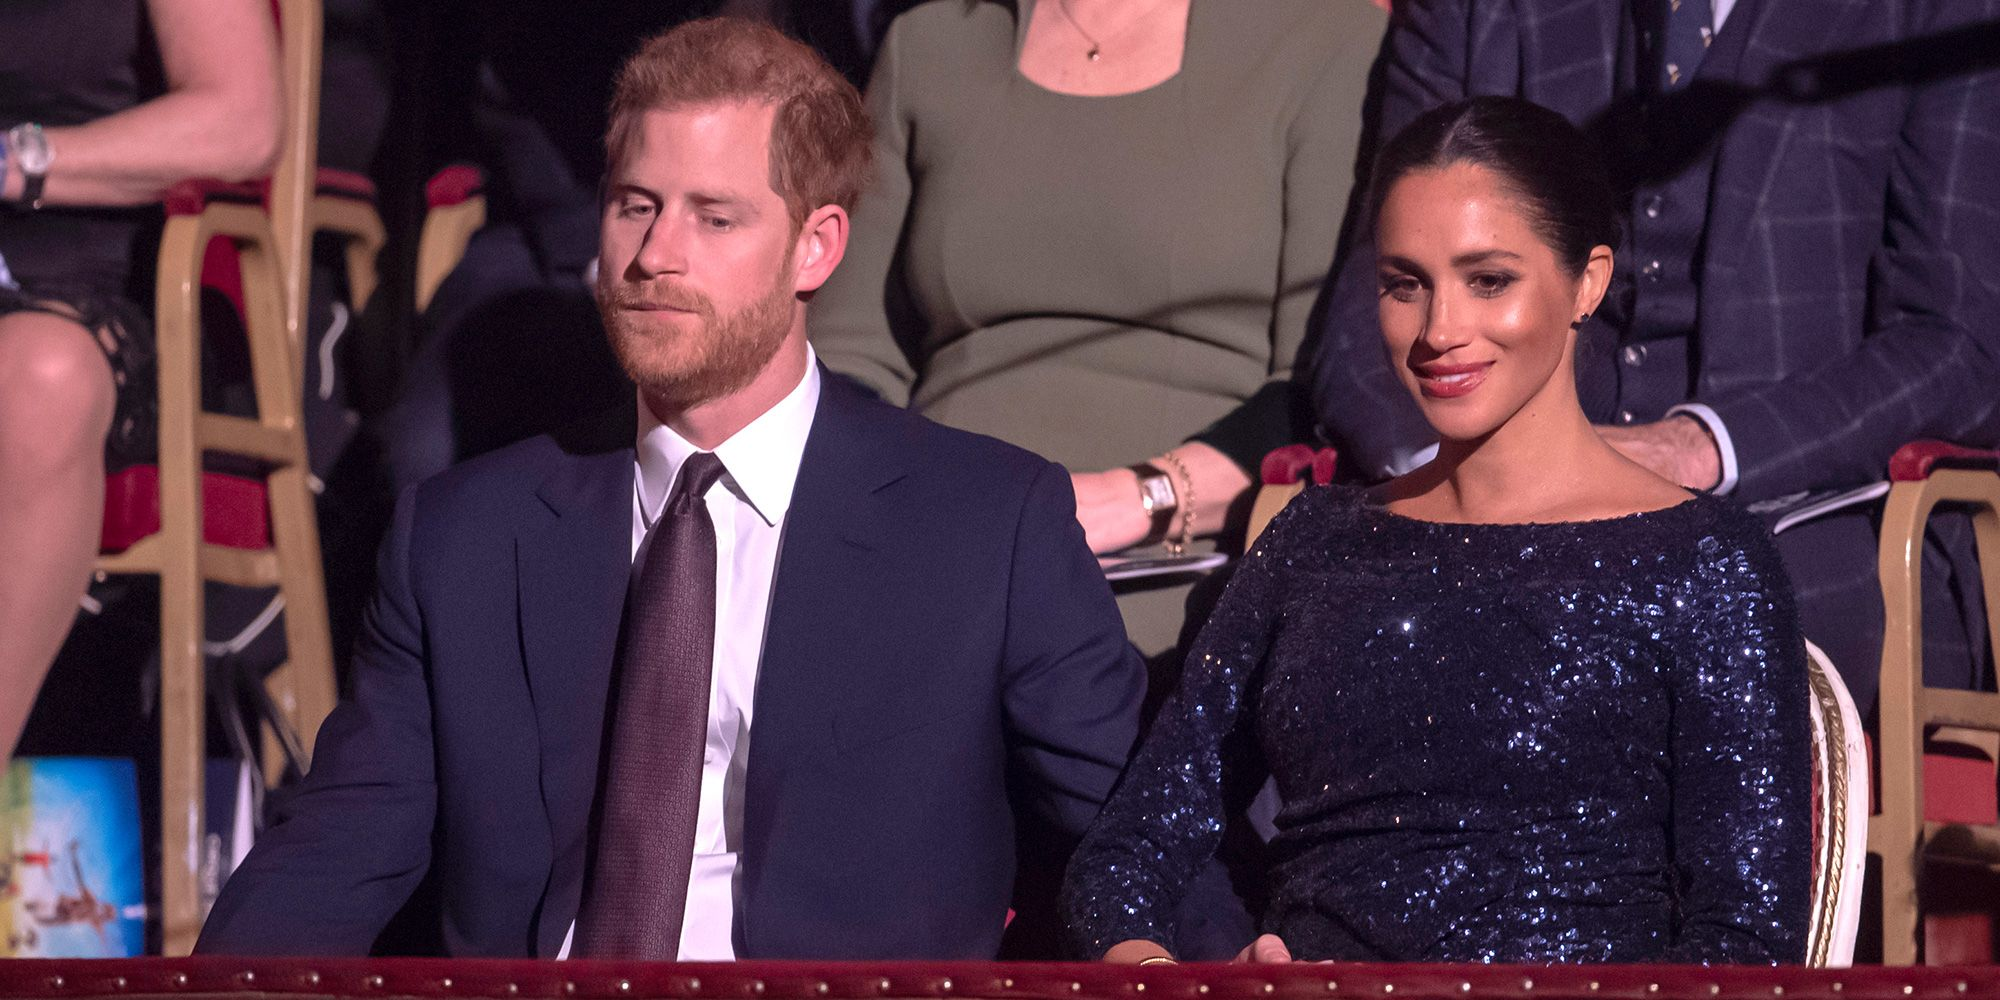 We all missed Prince Harry's insanely cute PDA with Meghan Markle this week